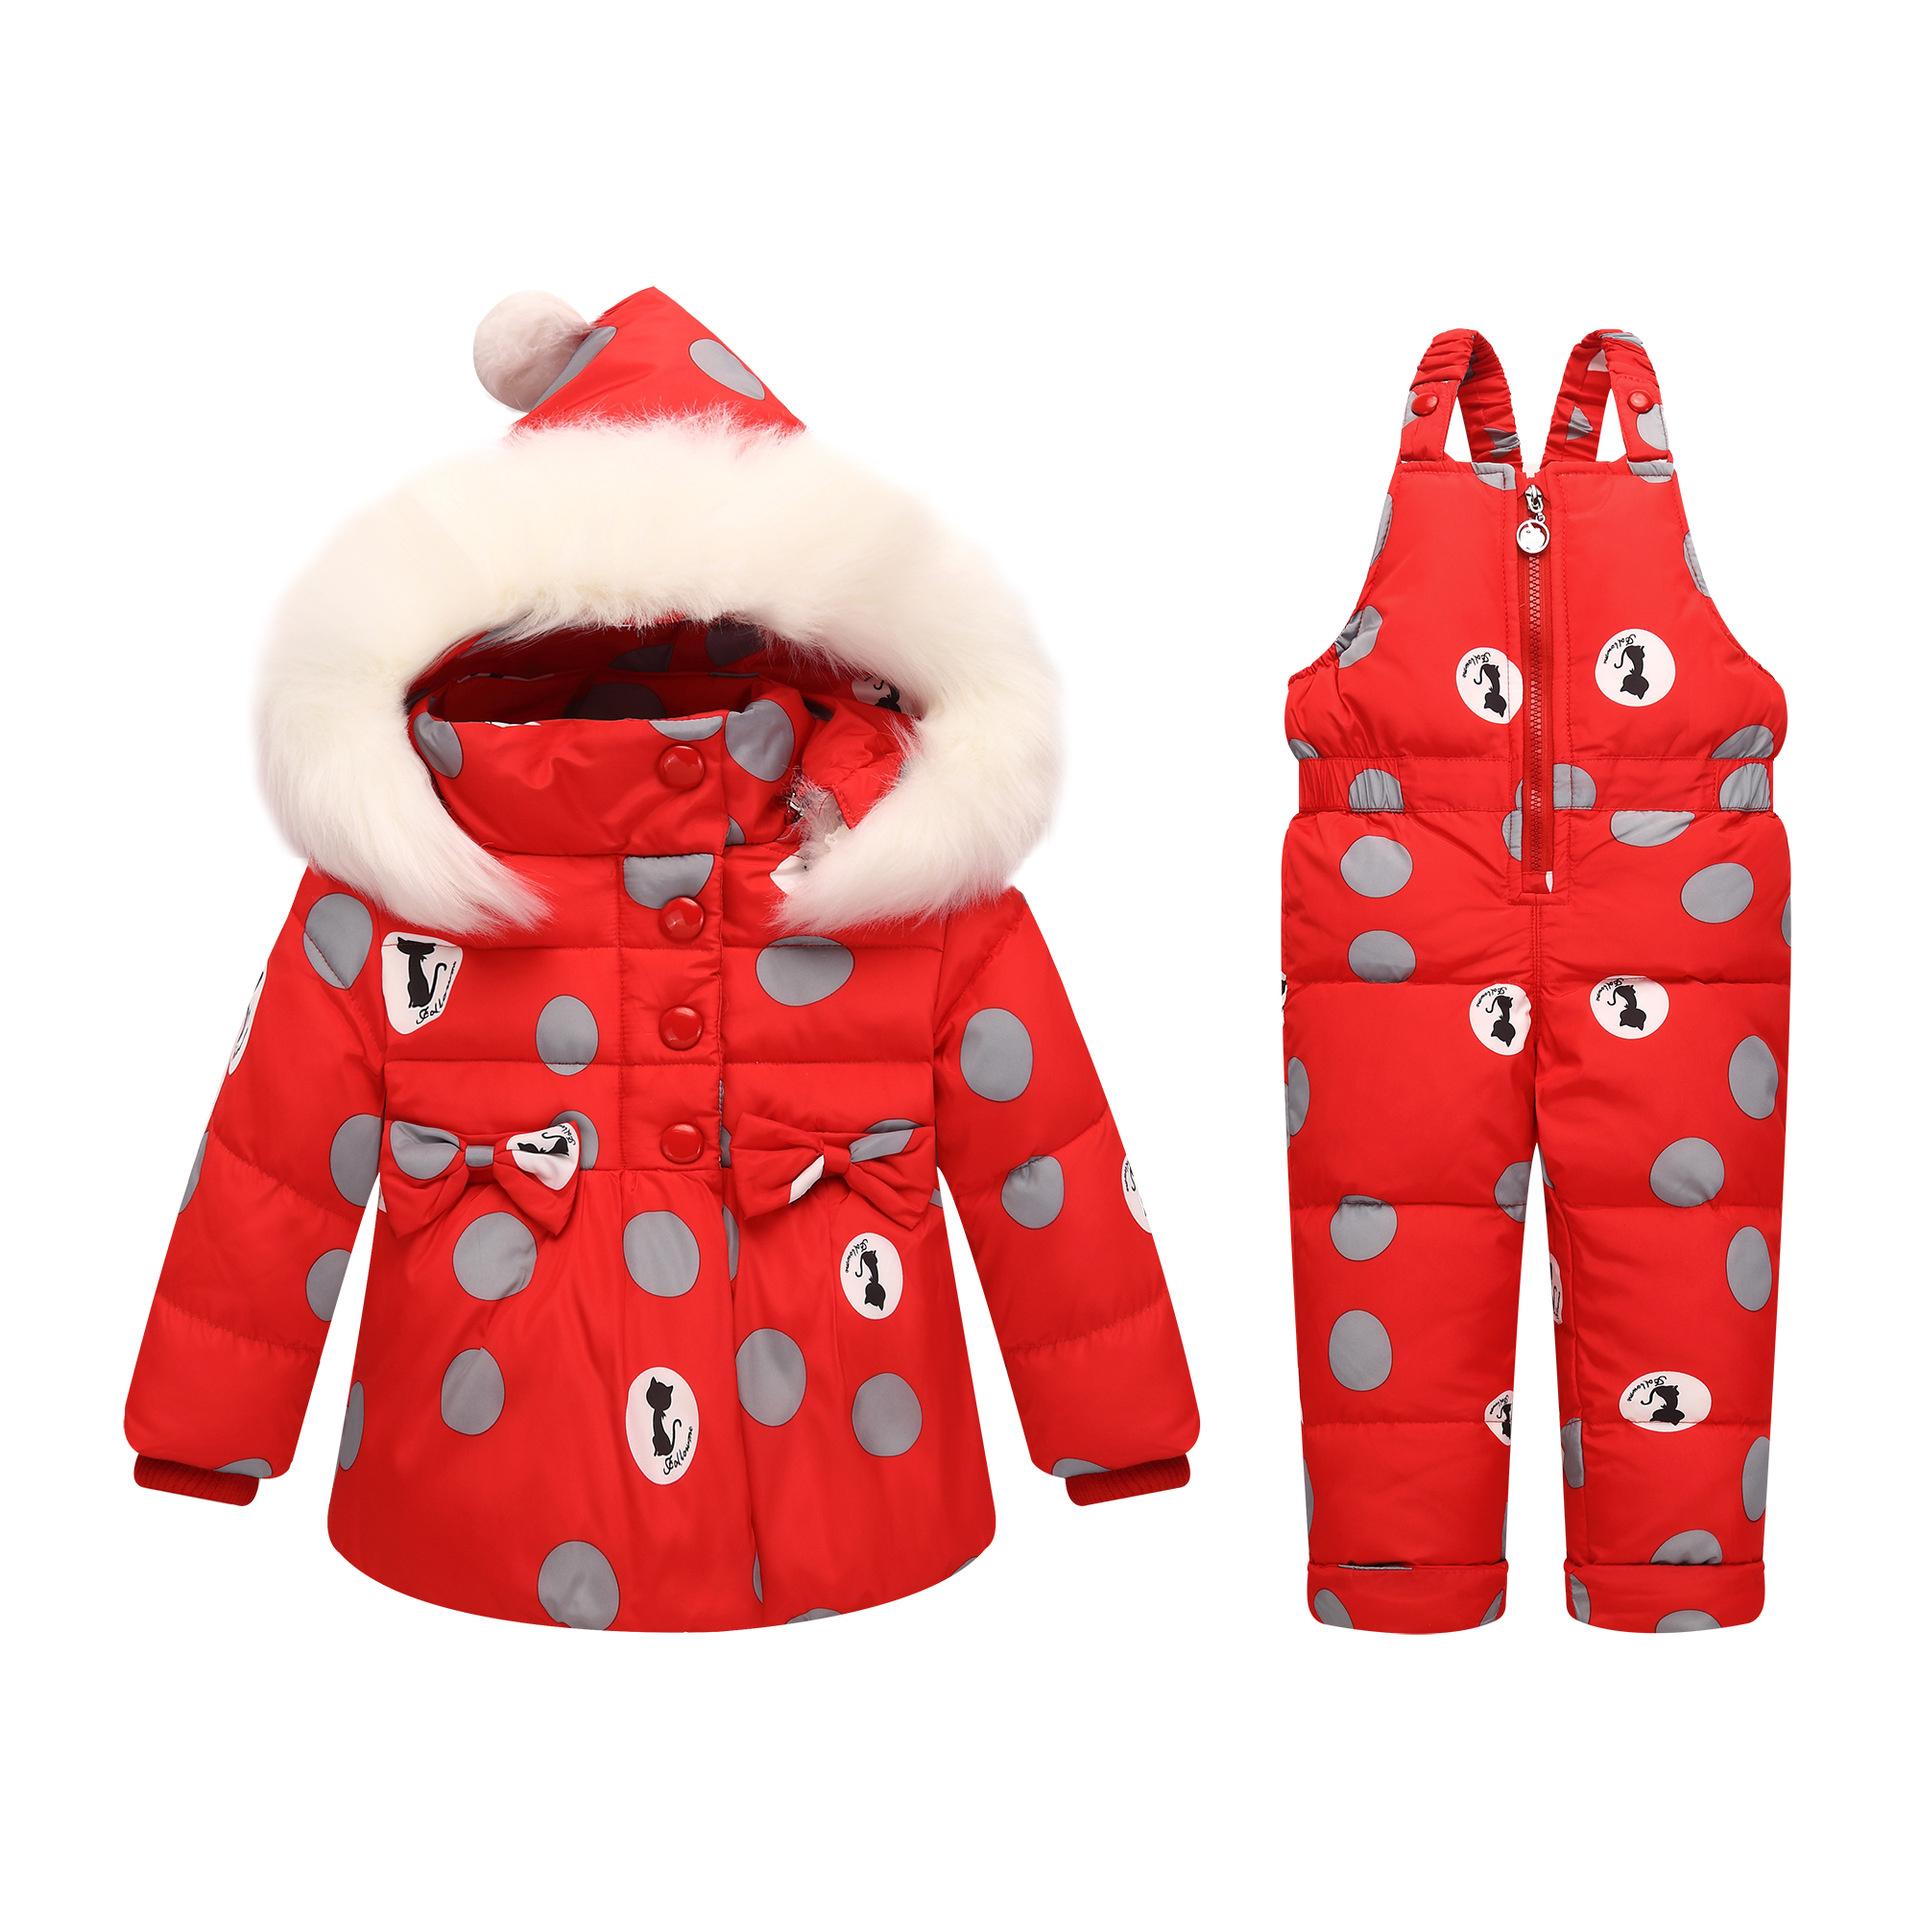 все цены на ZOETOPKID -30 Degree Russia Winter children Girls Clothes set Down Jacket Coat + Jumpsuit For 1-4 Years Kids Baby Girl Snowsuit онлайн